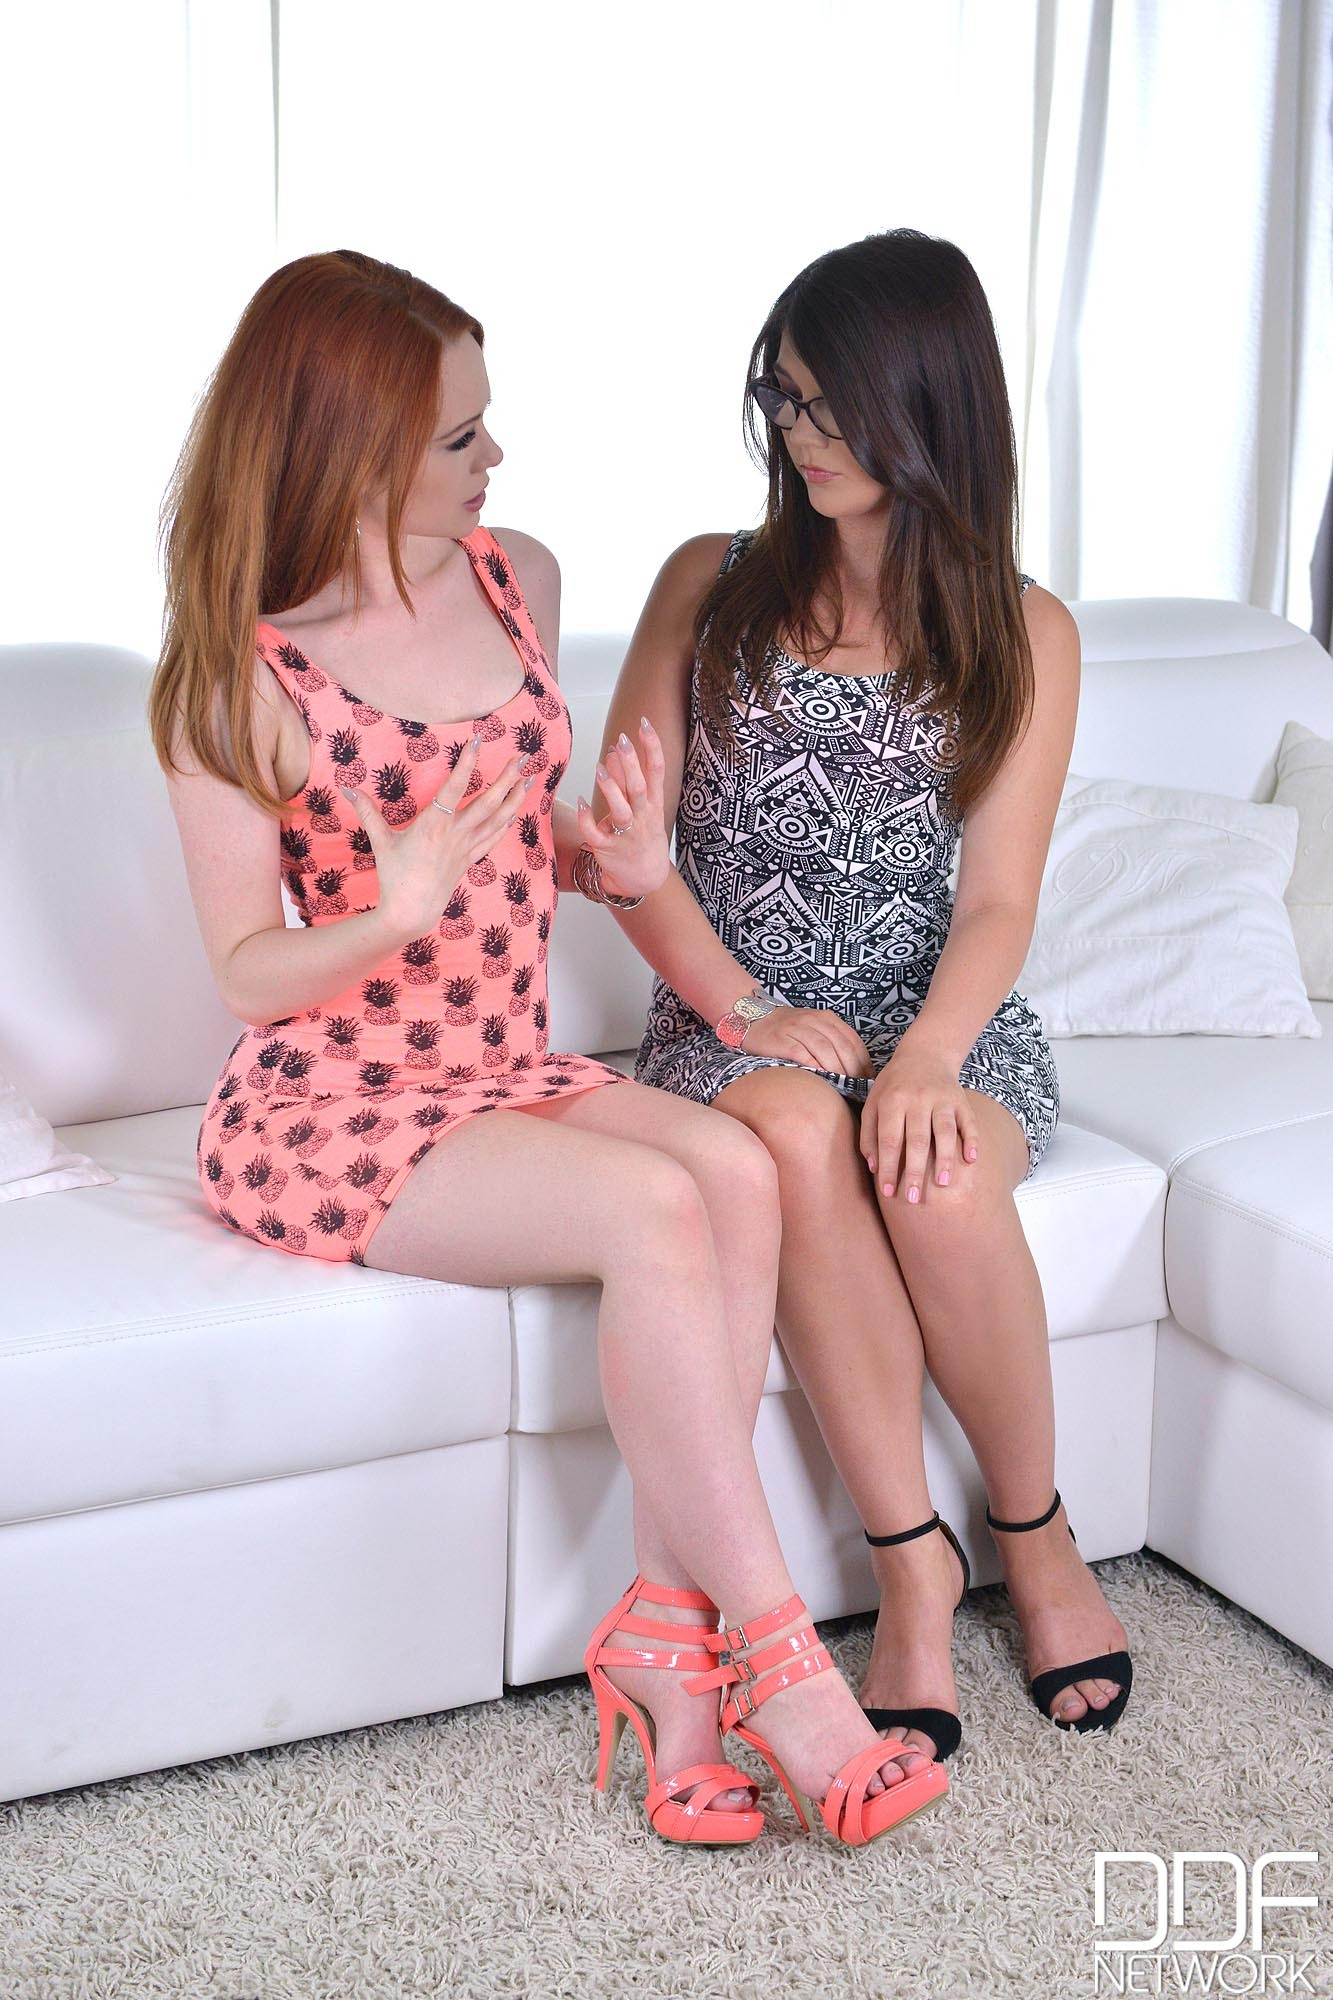 Stunning amateur lesbians Greta and Jamie-Lee licking each other's cunt № 968581 бесплатно